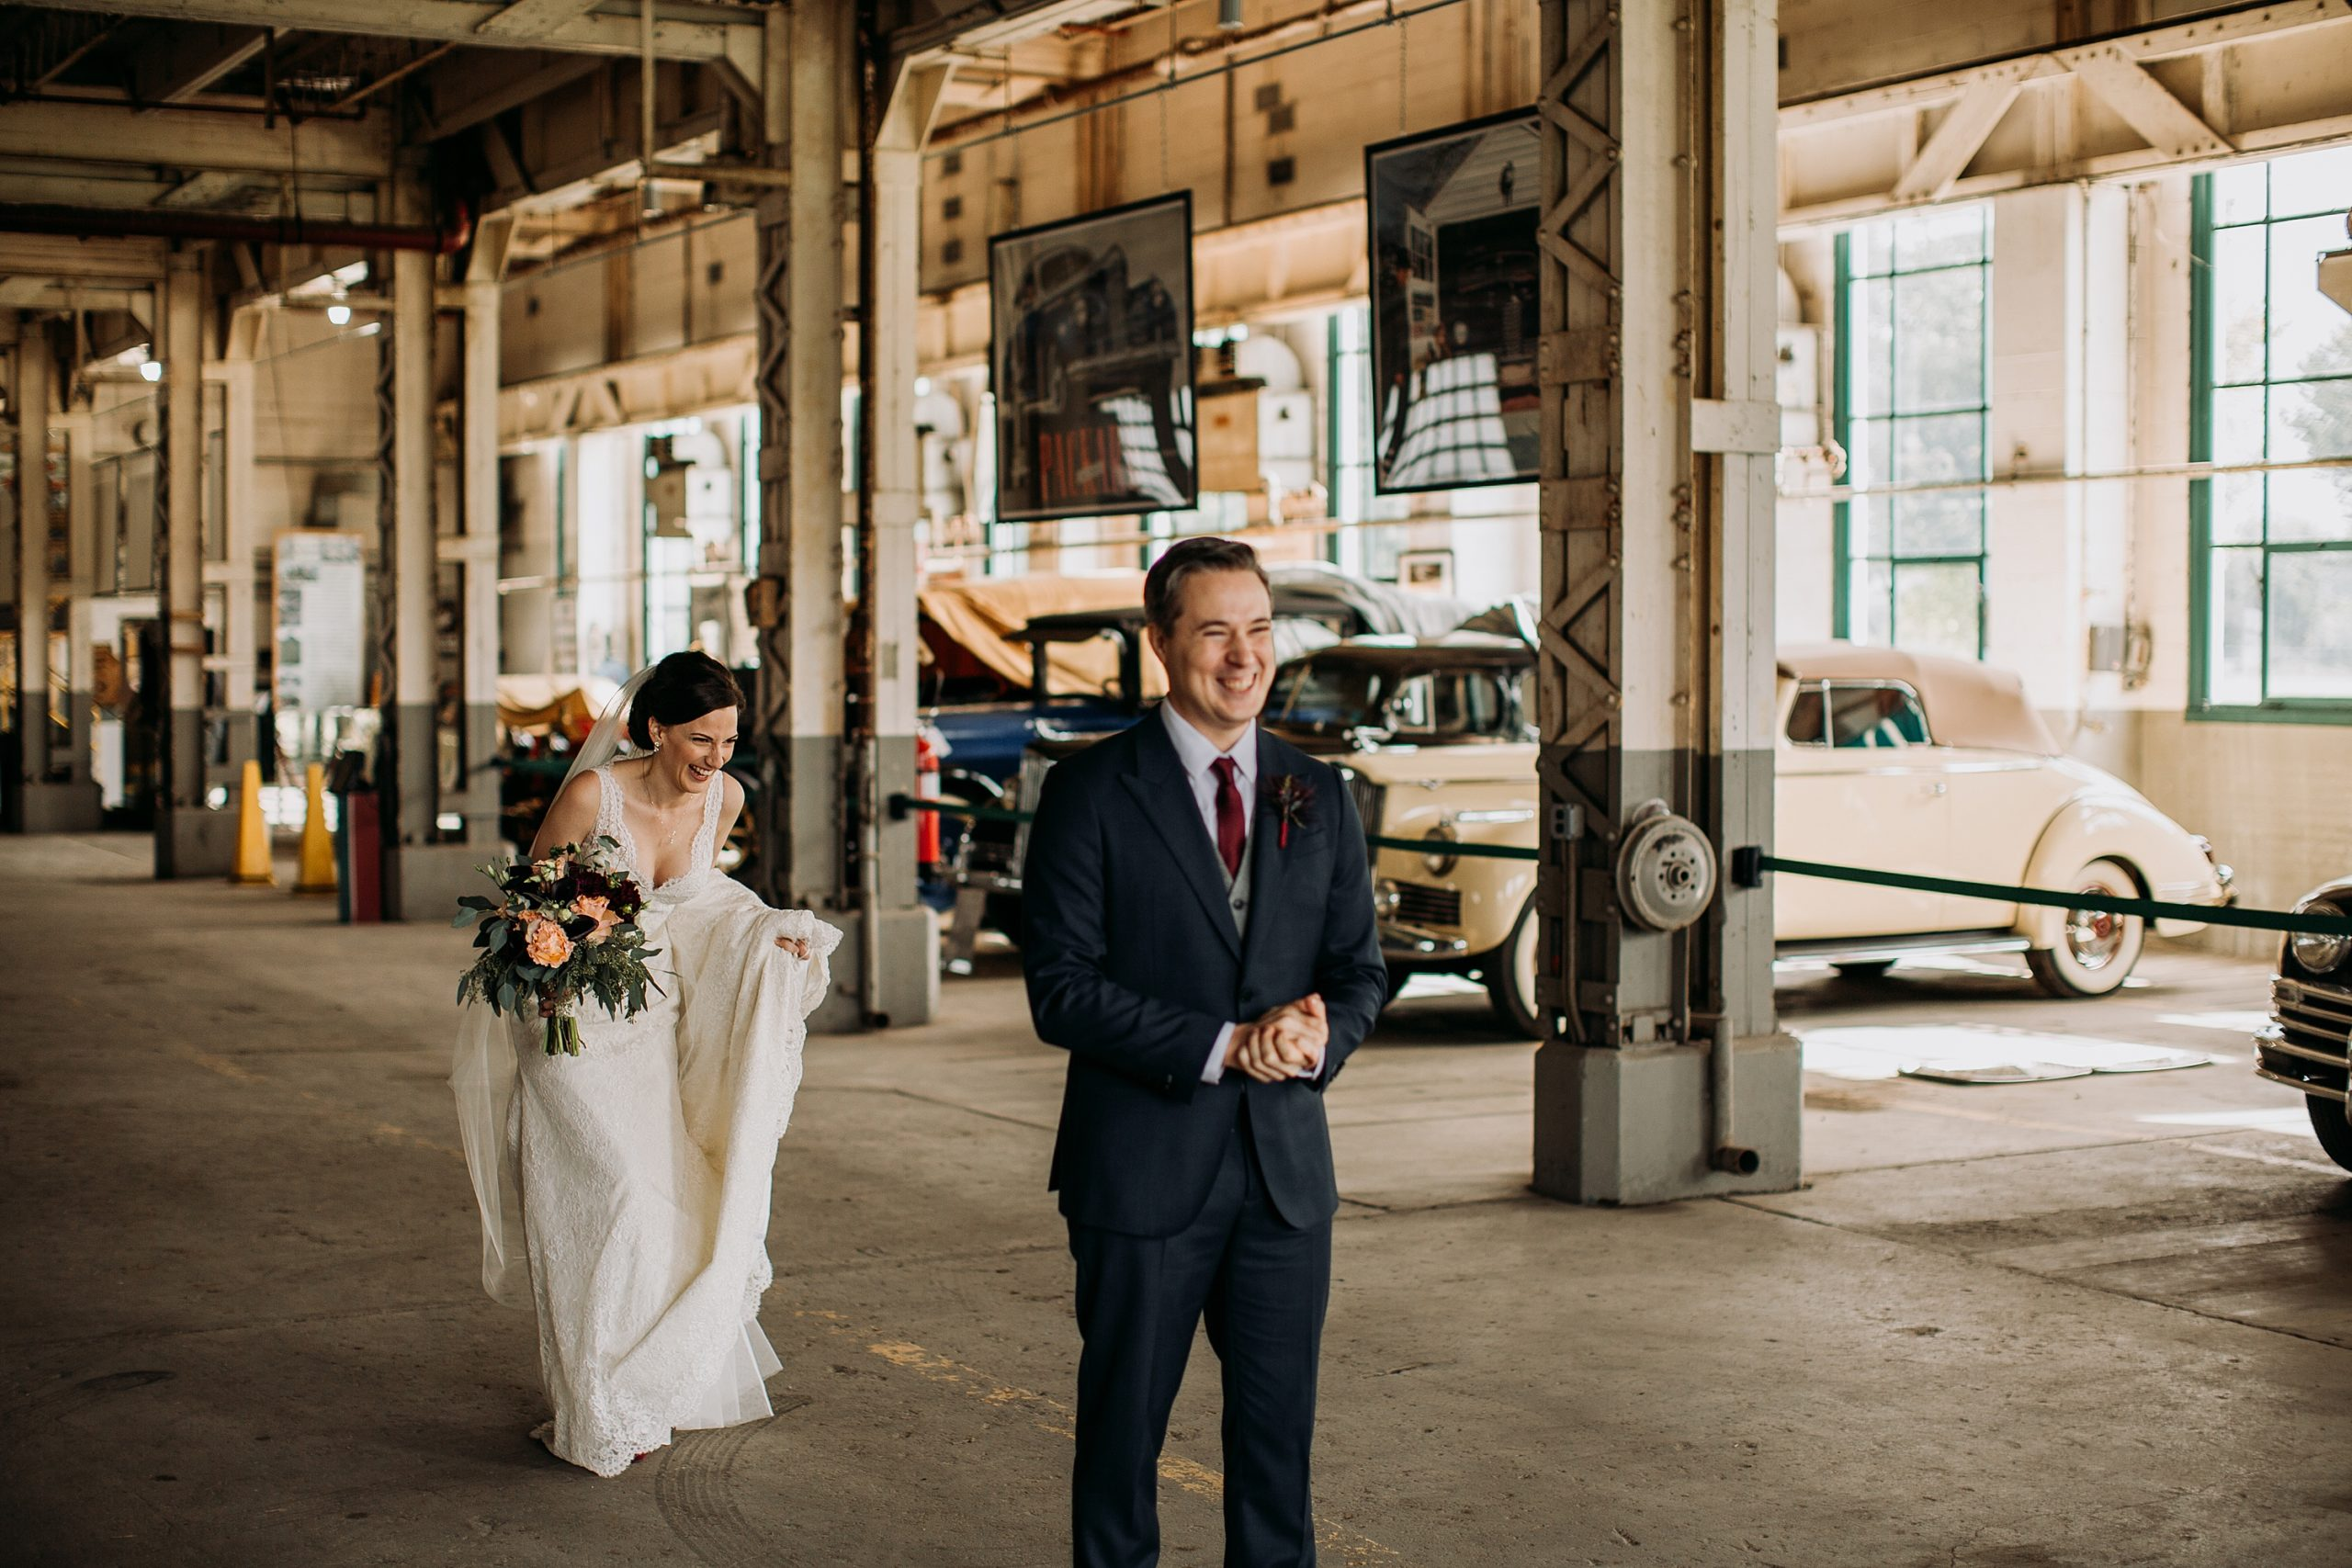 Bride and Groom's first look at the Packard Proving Grounds